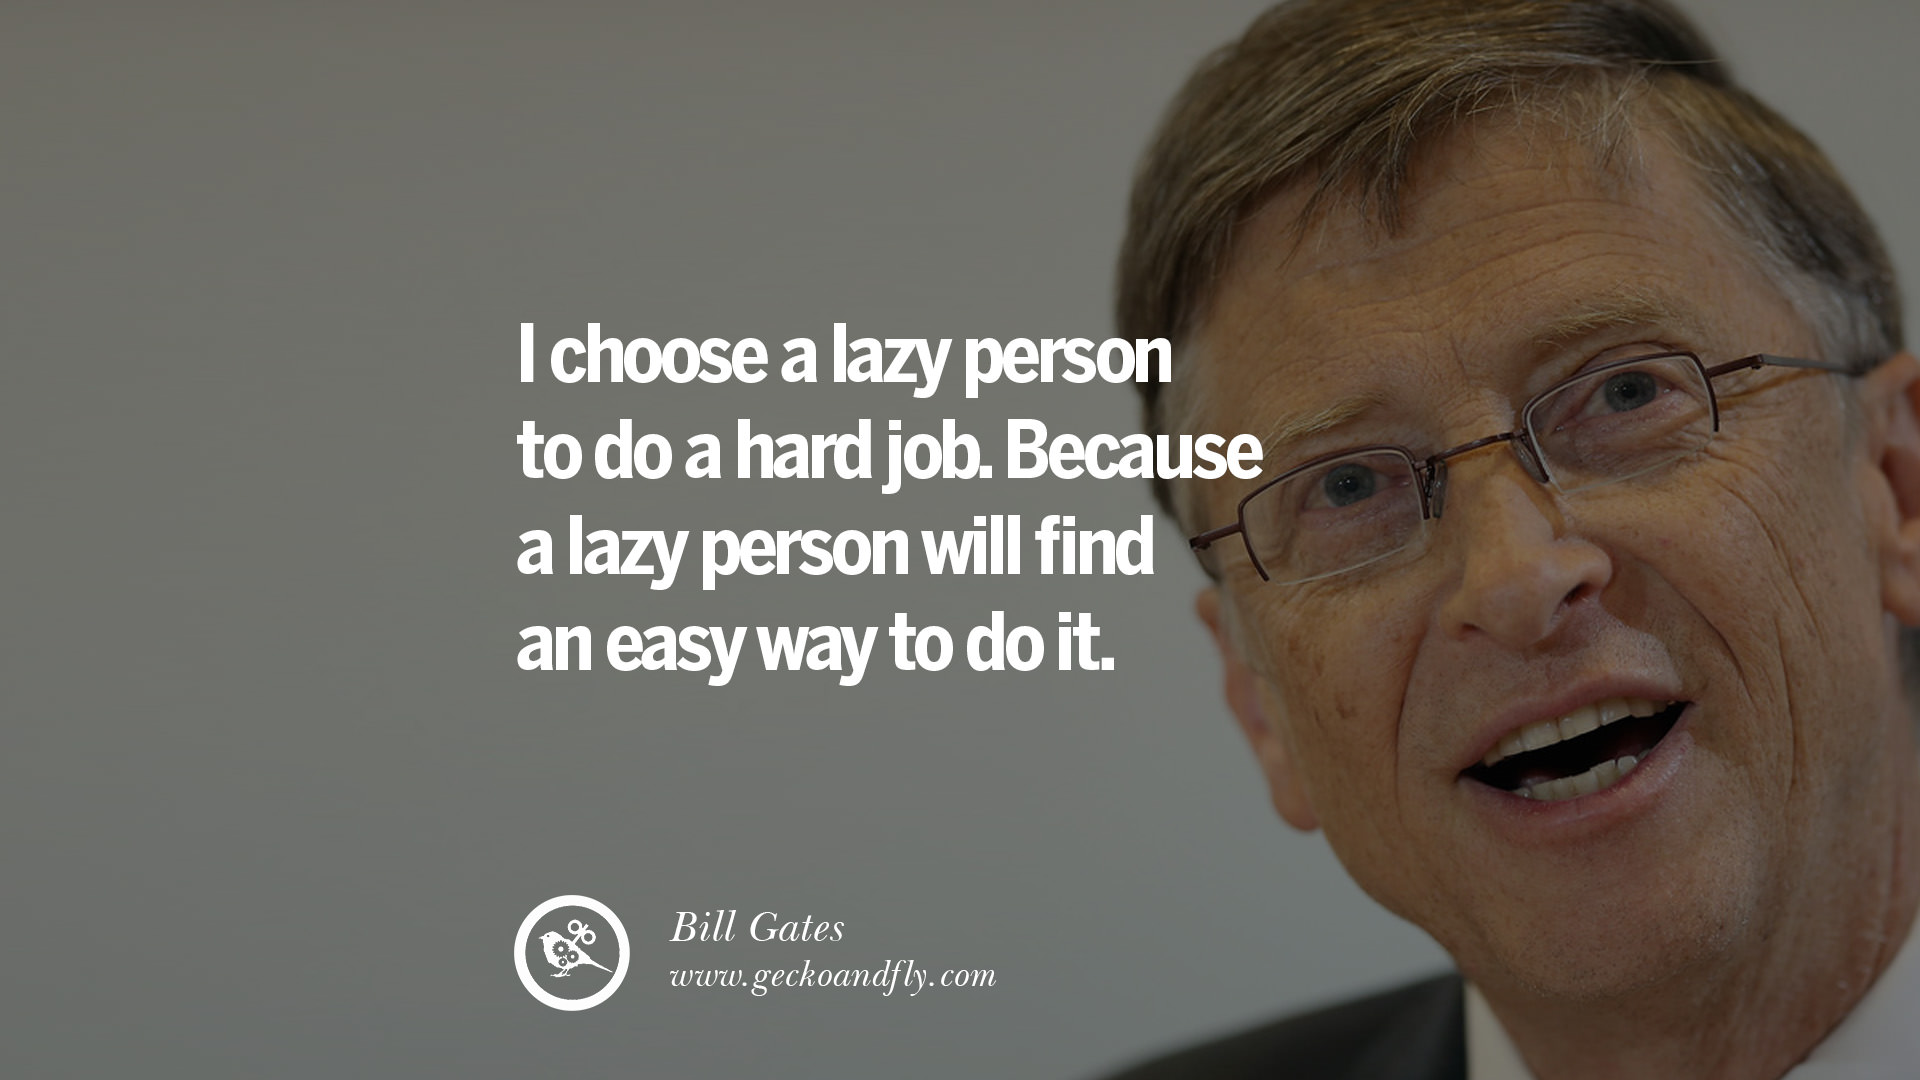 High Quality Resolution Wallpapers Inspirational Reading Quotes Bill Gates Quotes I Choose A Lazy Person To Do A Hard Job